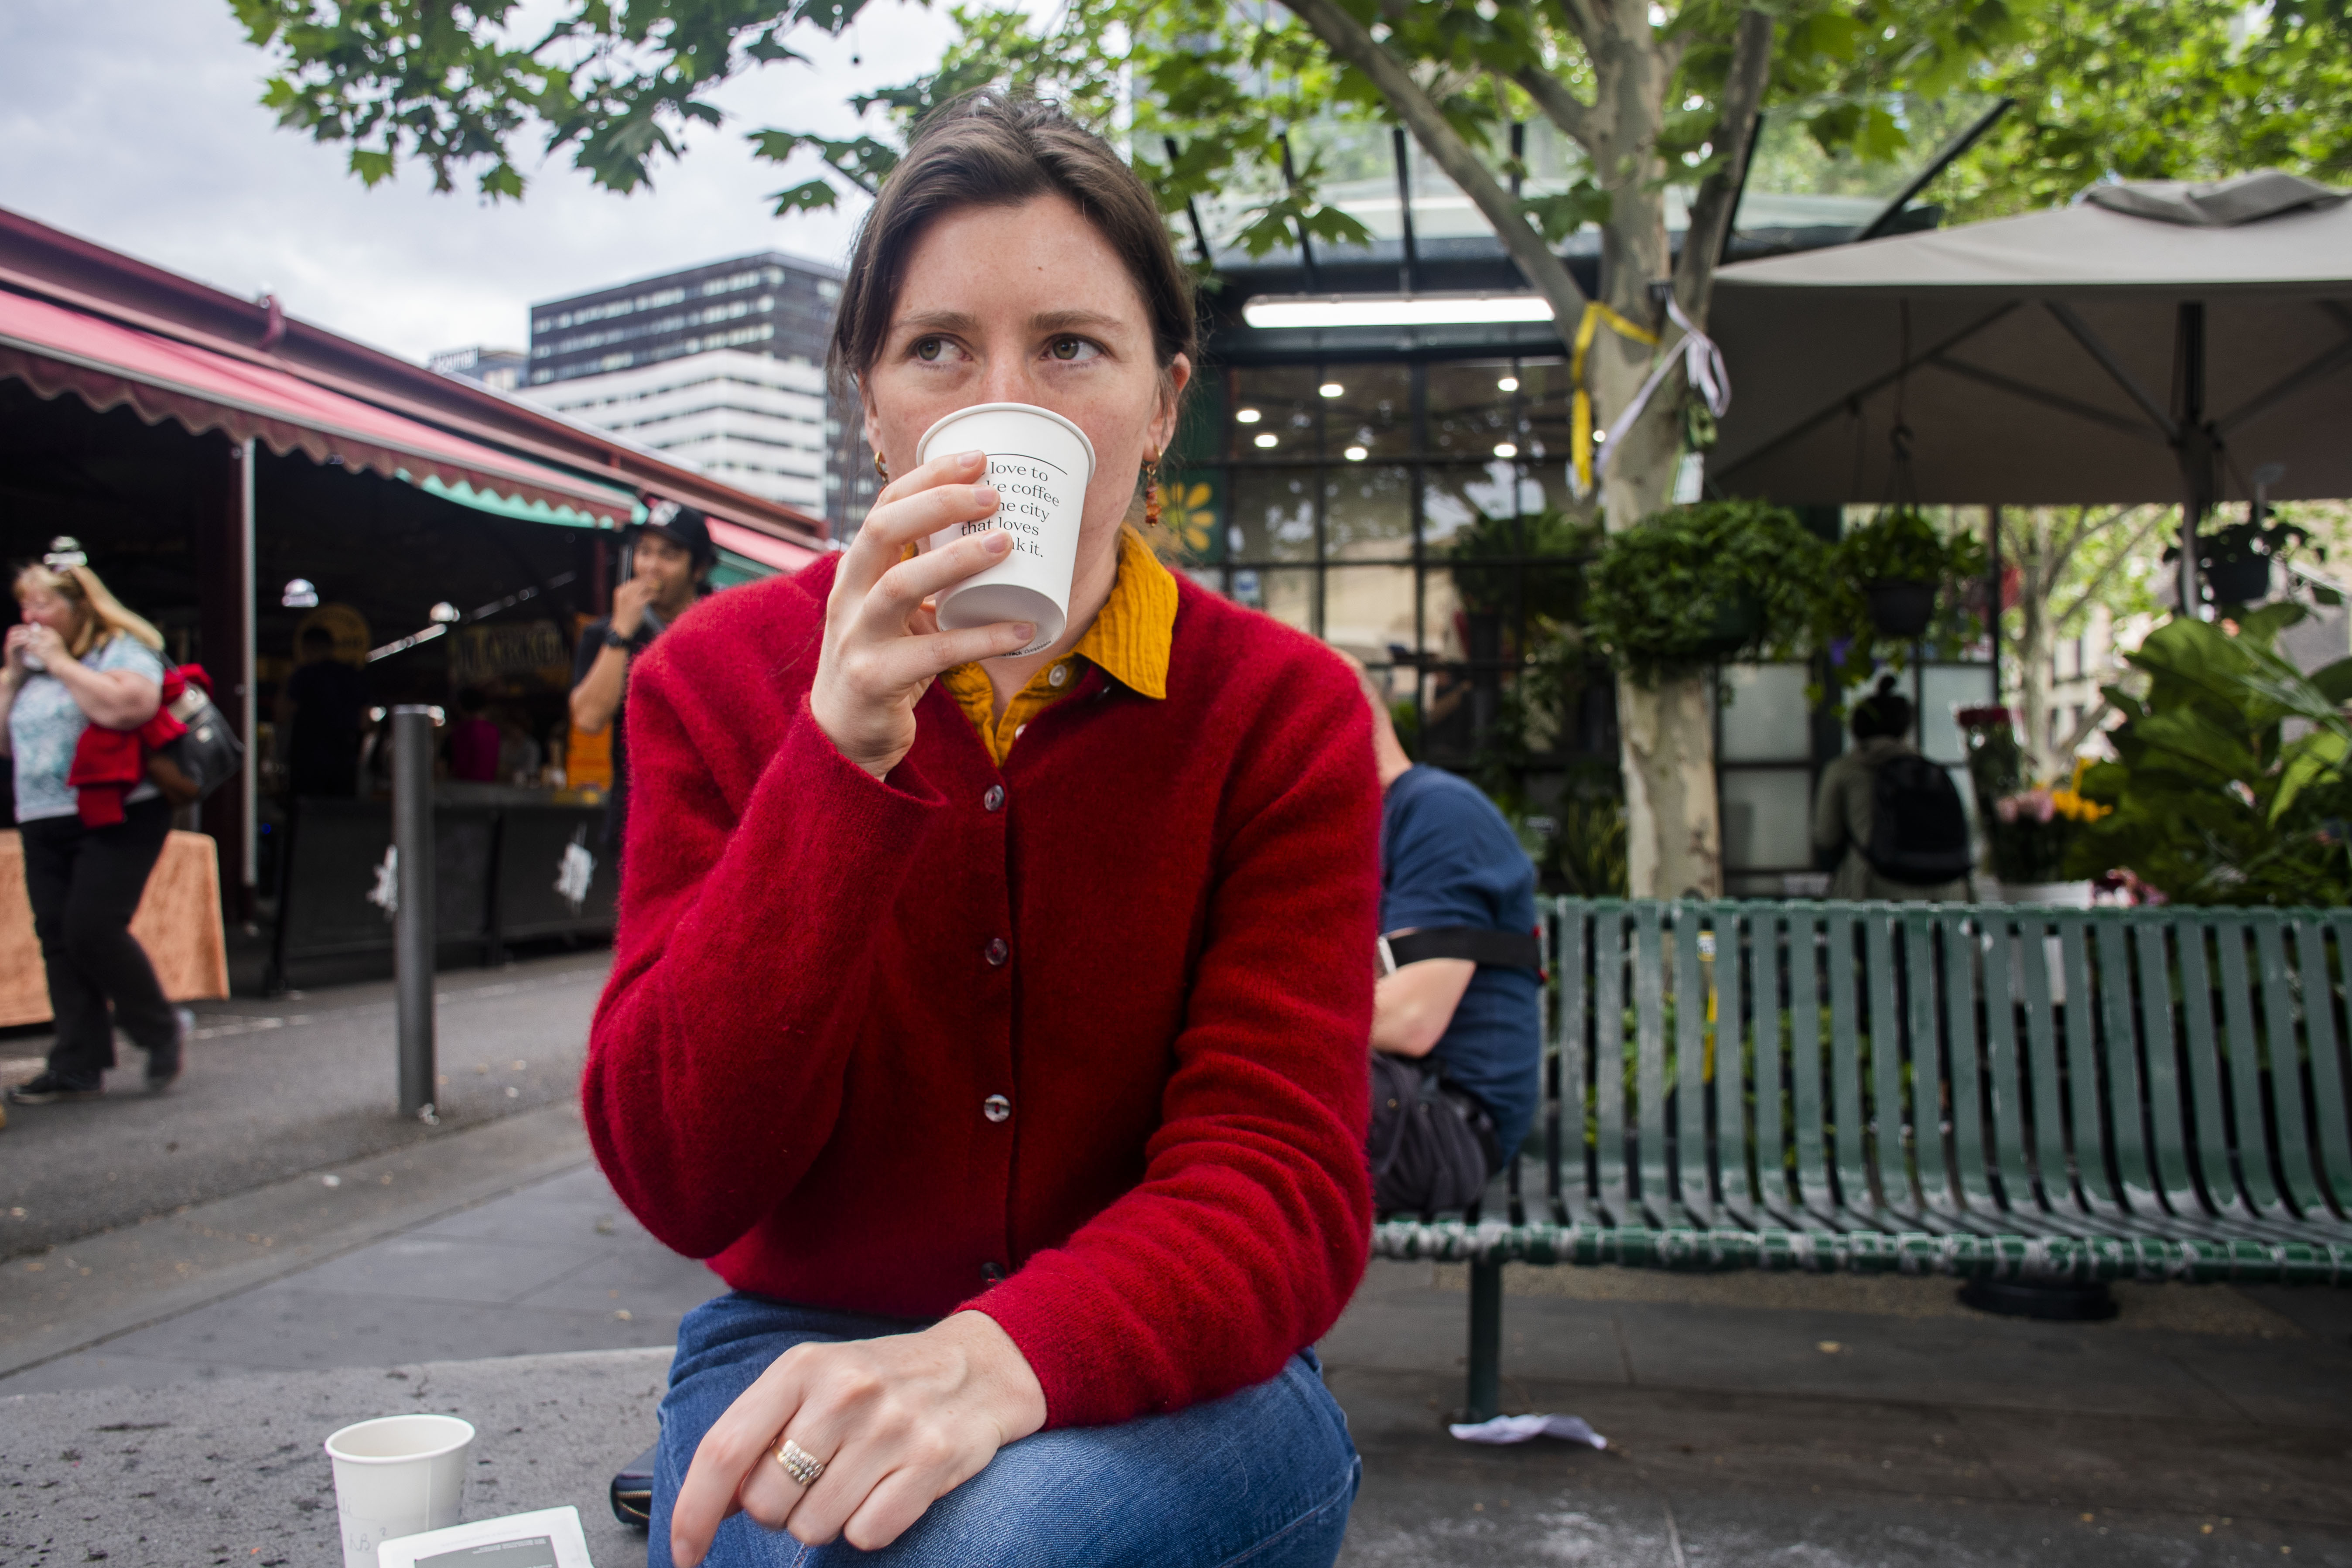 From laneway stops to market stalls, Melburnians can't get enough coffee